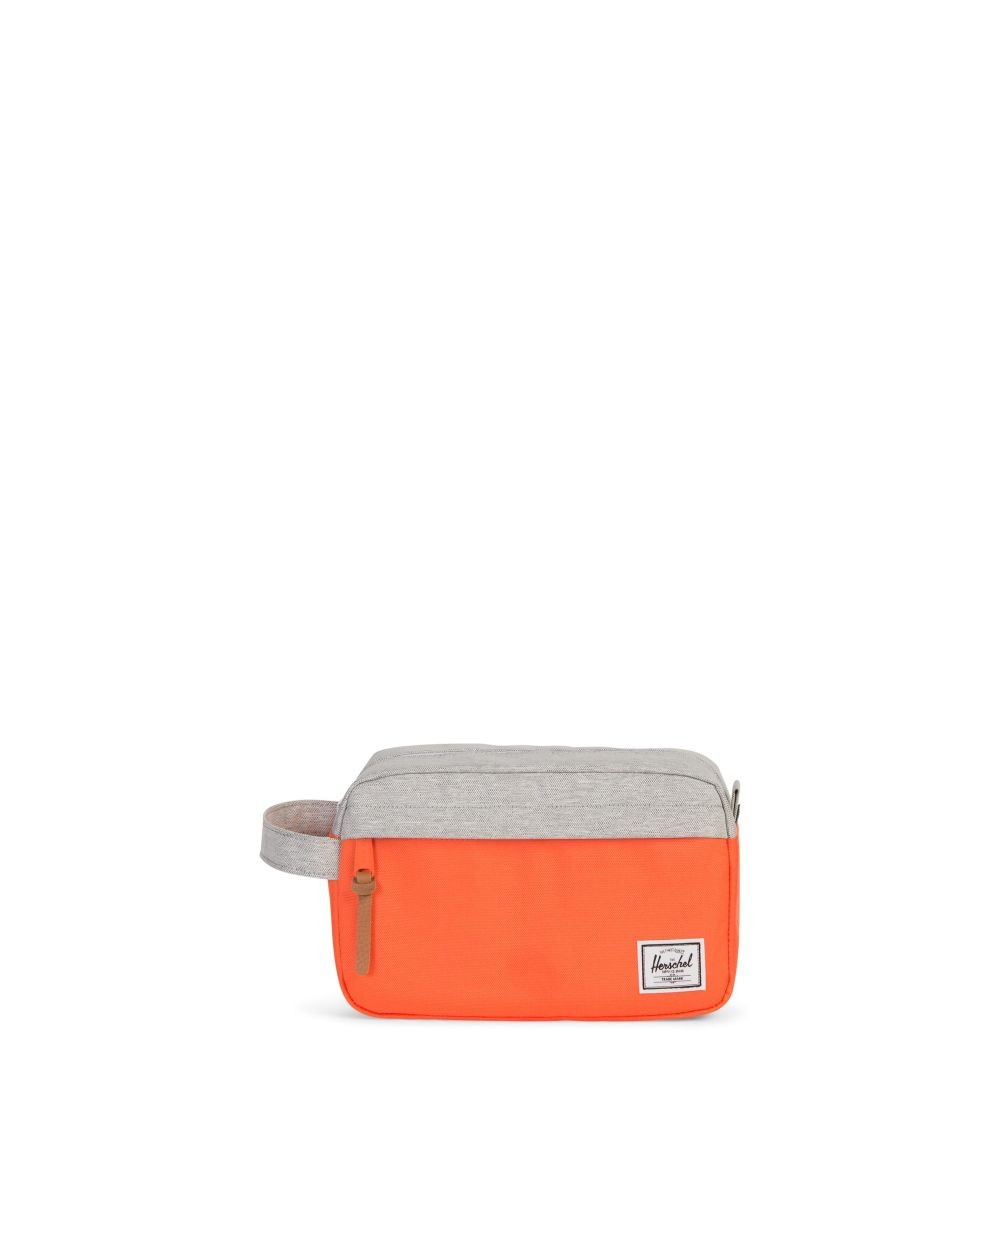 TROUSSE DE TOILETTE CHAPTER ORANGE ET BEIGE HERSCHEL